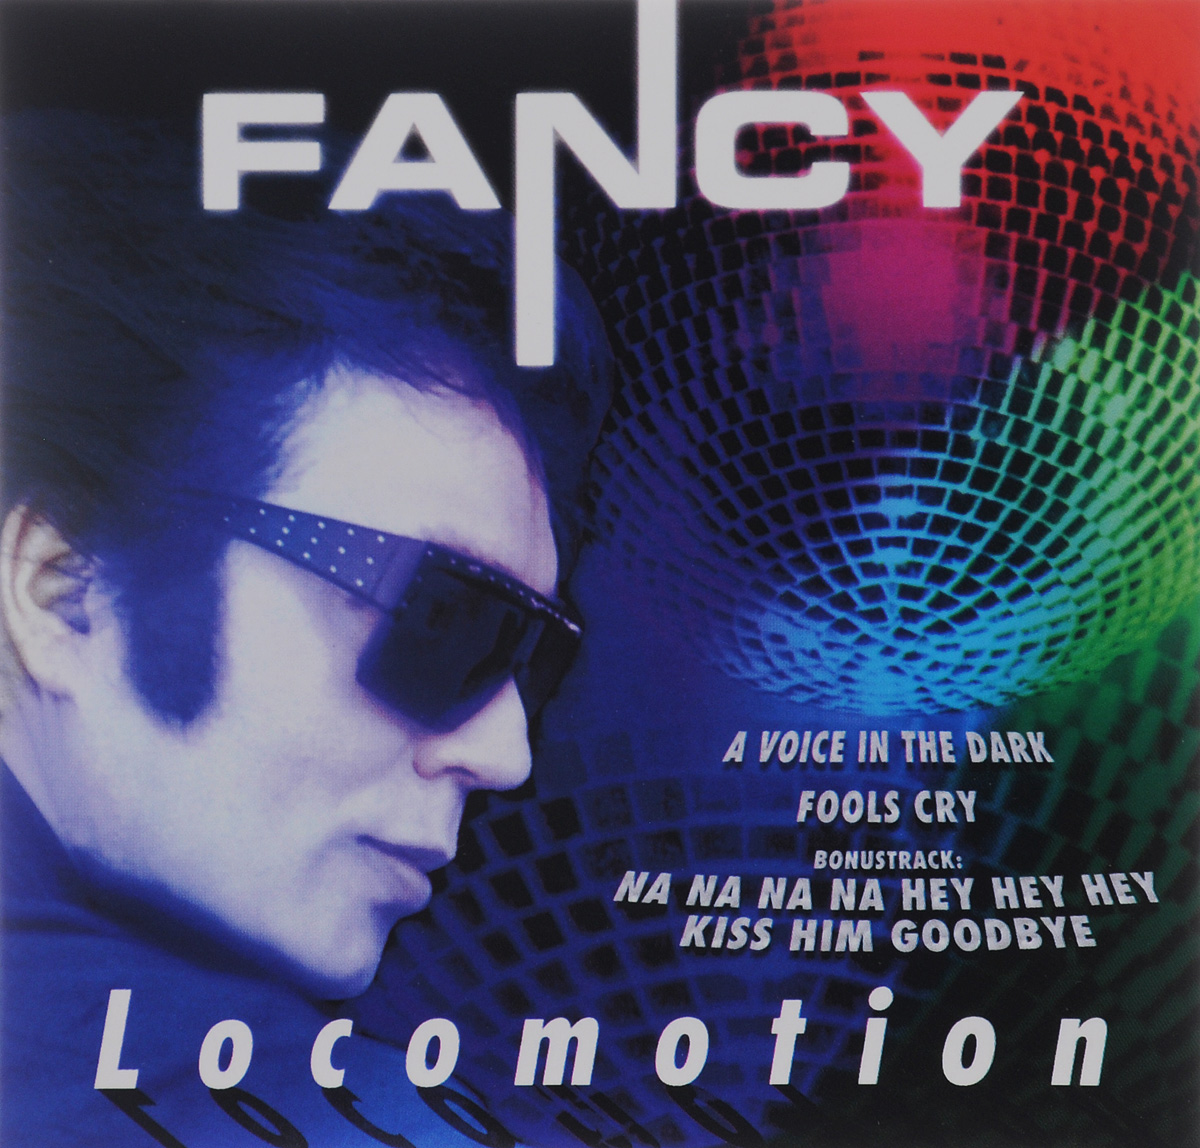 Fancy. Locomotion